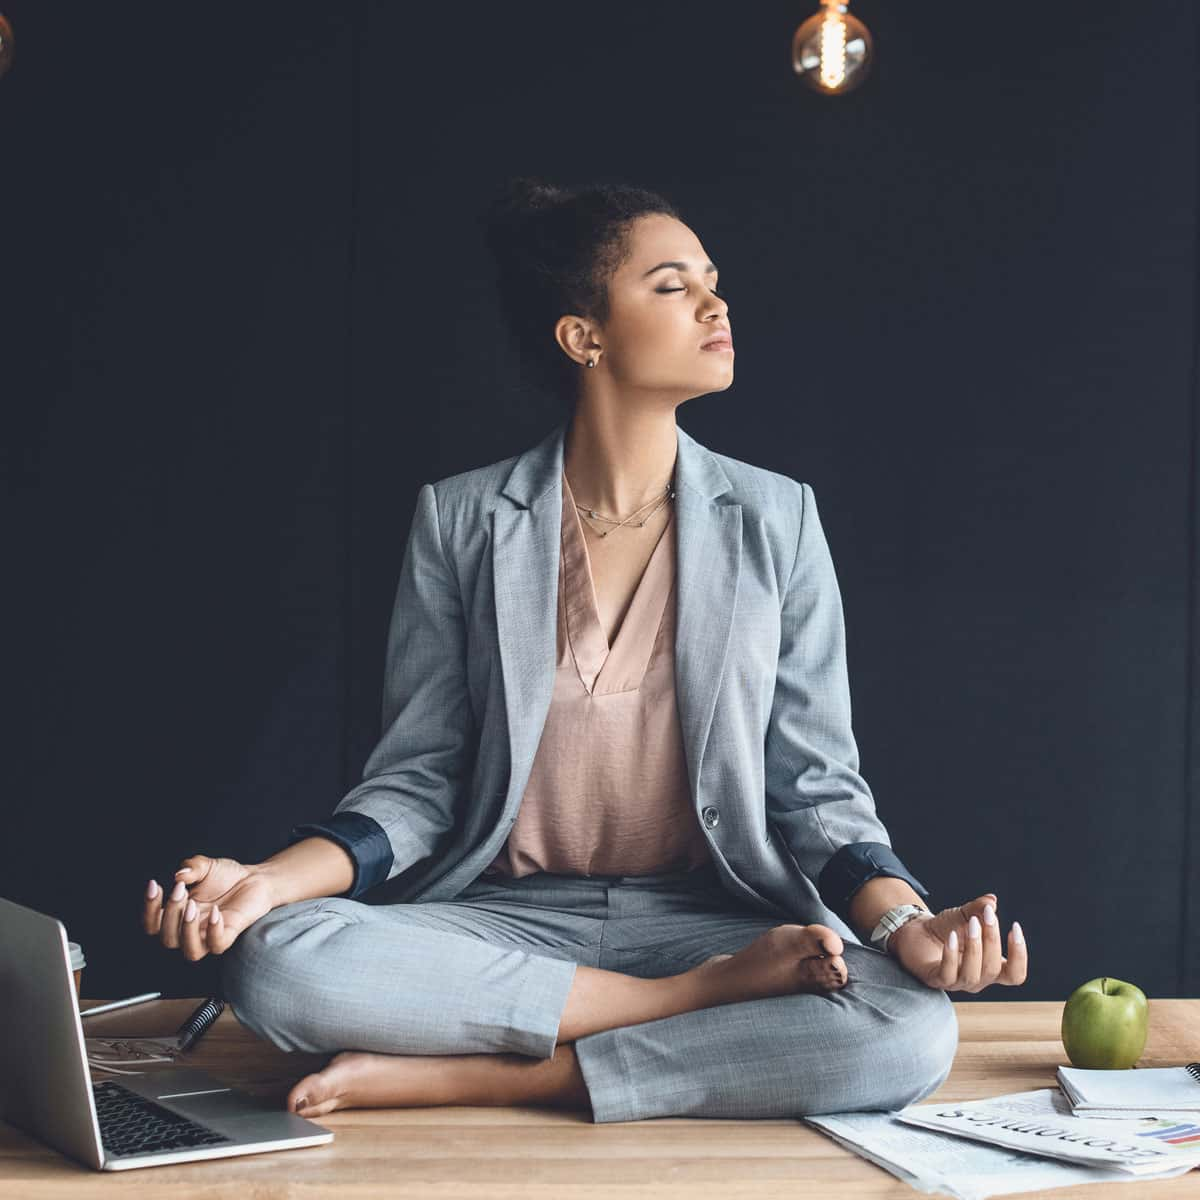 Woman meditating to relax at work